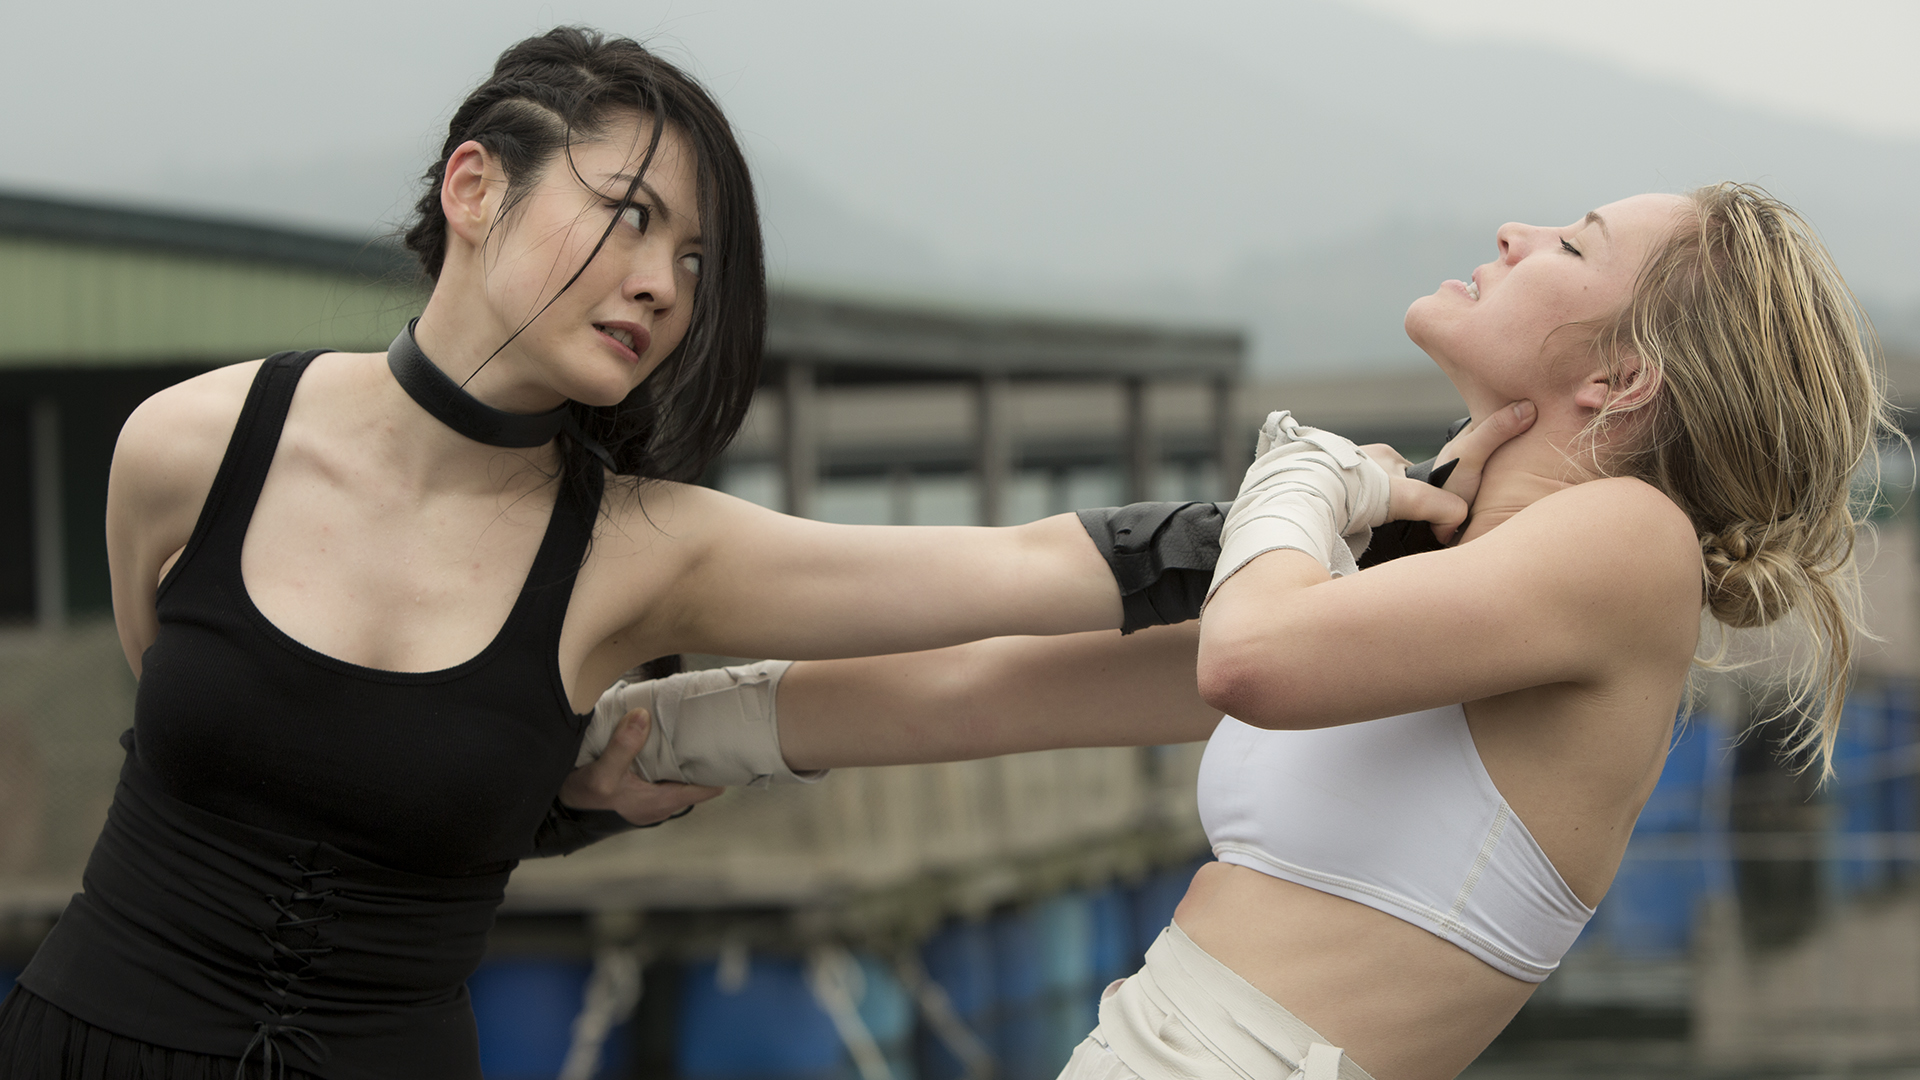 lady bloodfight full movie watch online free